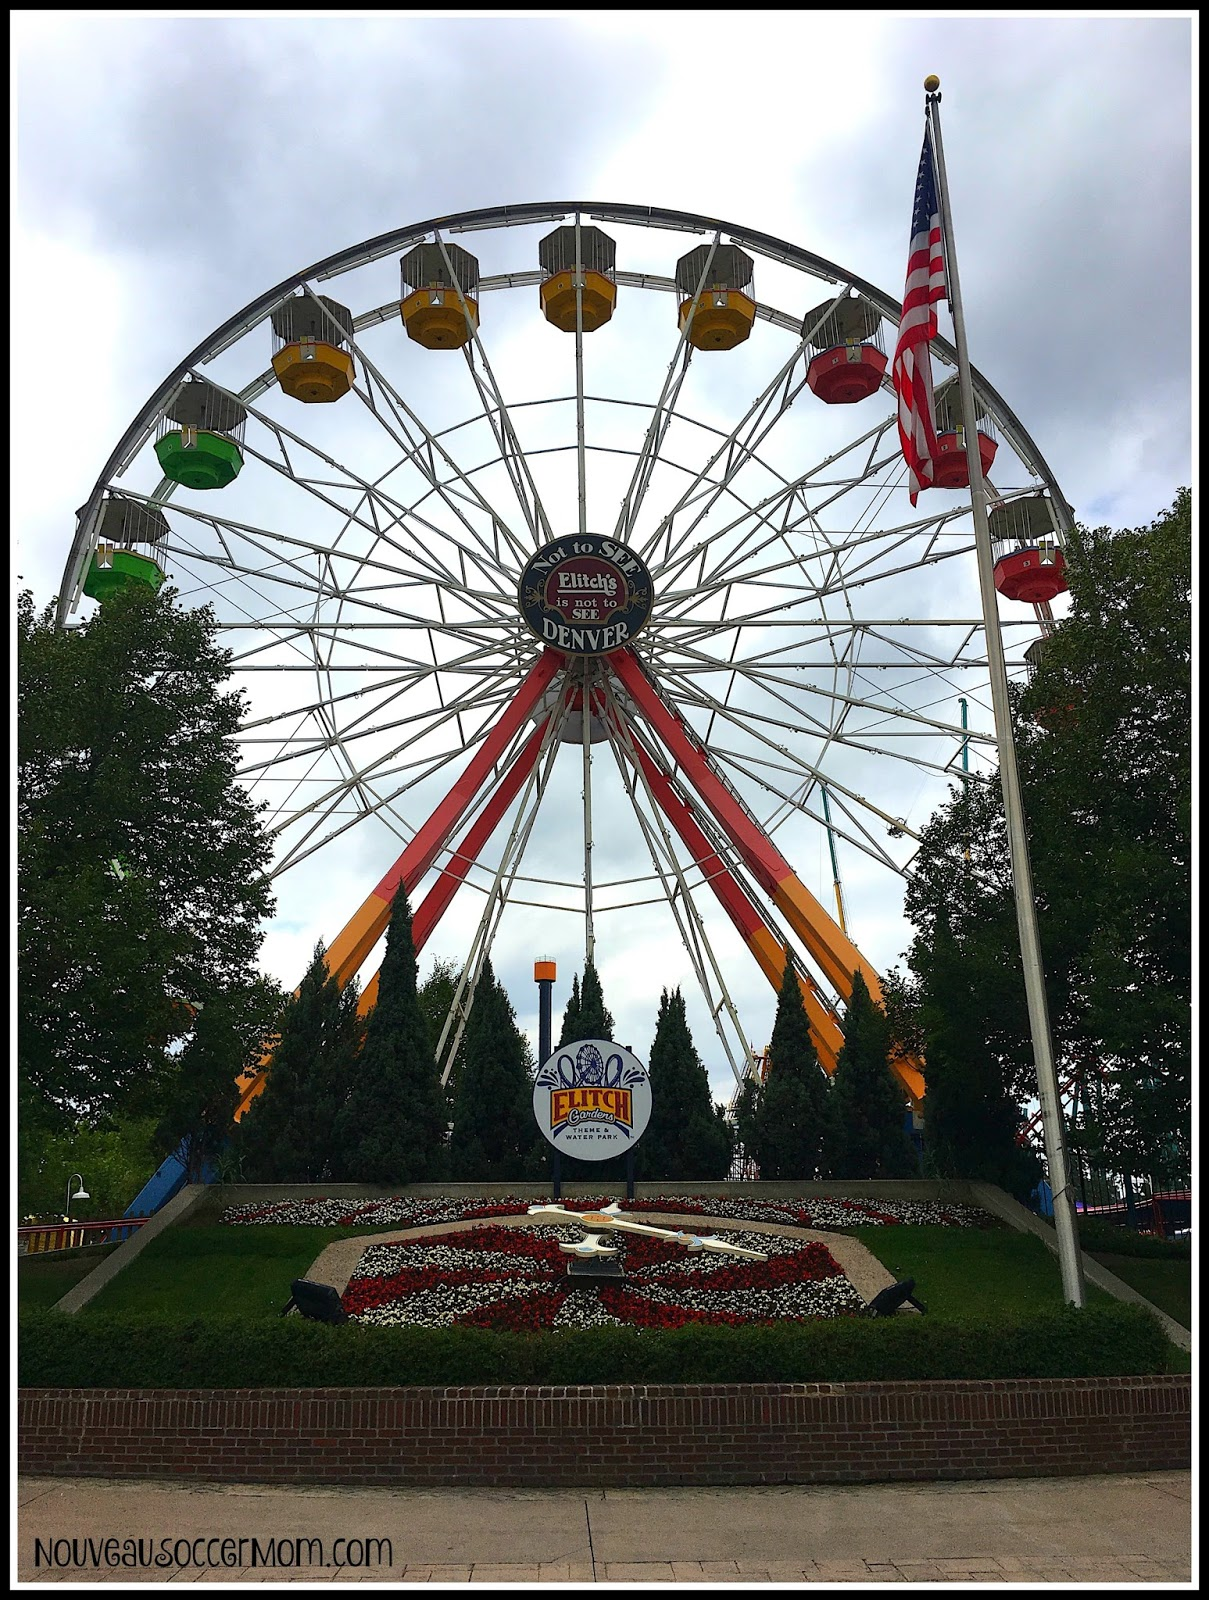 The Diary Of A Nouveau Soccer Mom Elitch Gardens Summer Fun Review